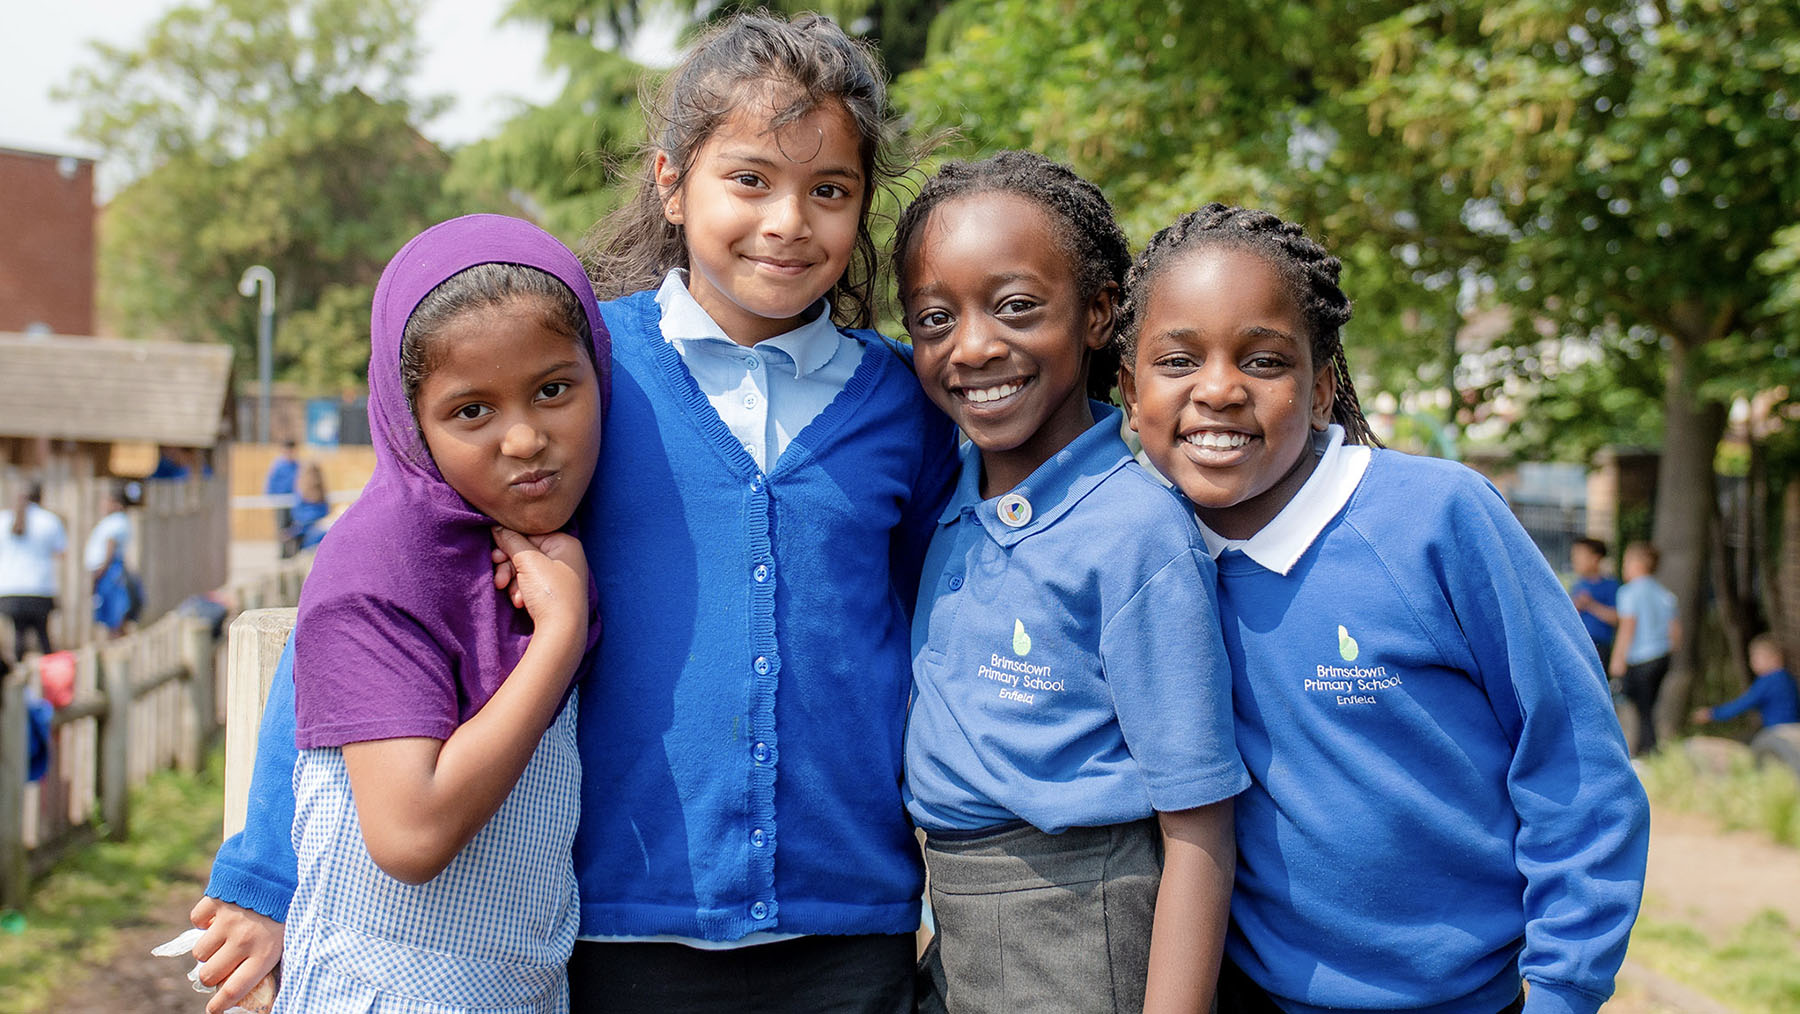 4 girls in the playground hugging and smiling